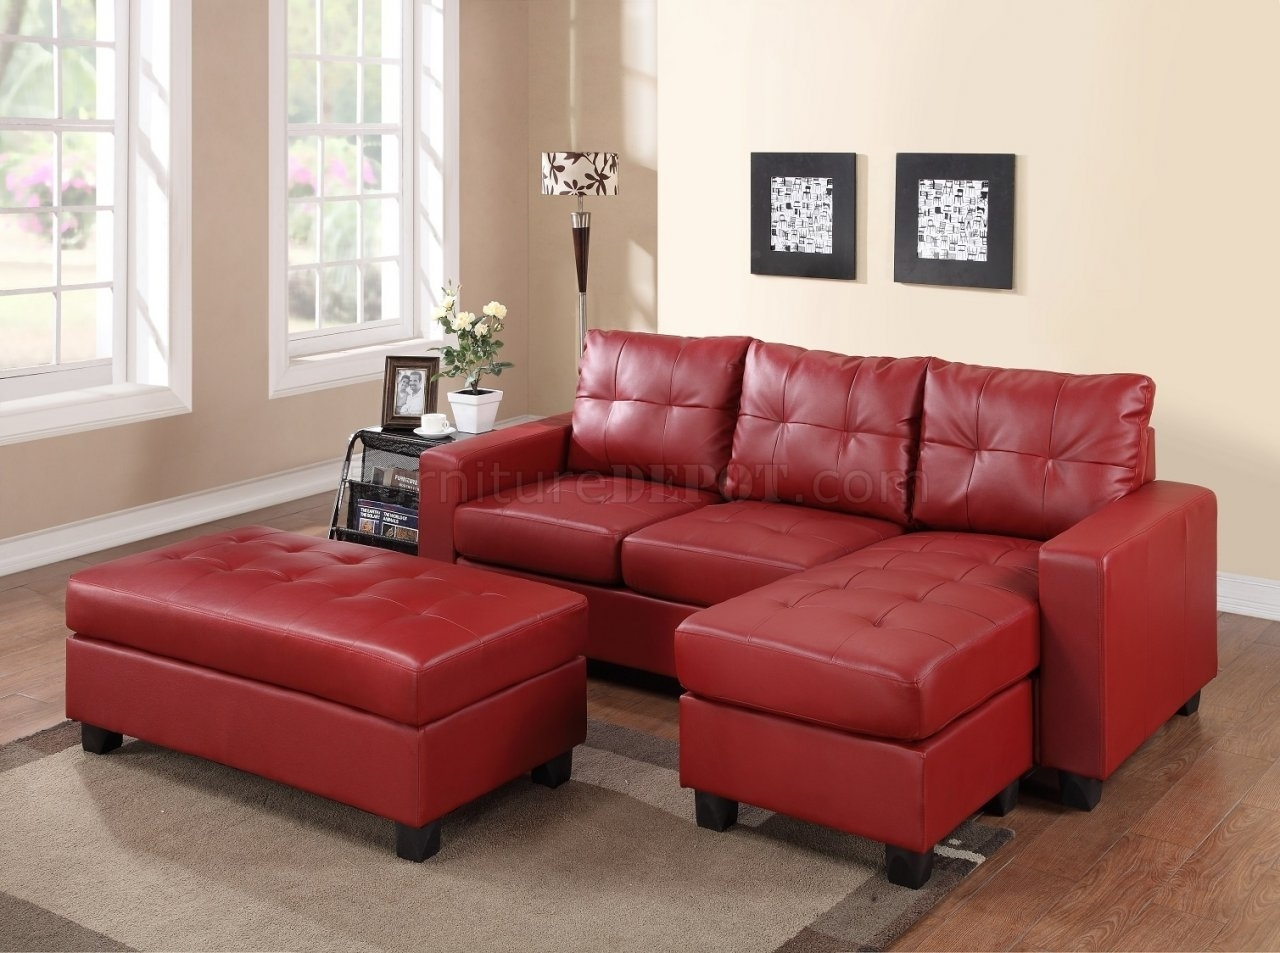 2511 Sectional Sofa Set In Red Bonded Leather Match Pu With Red Leather Sectional Couches (Image 1 of 10)